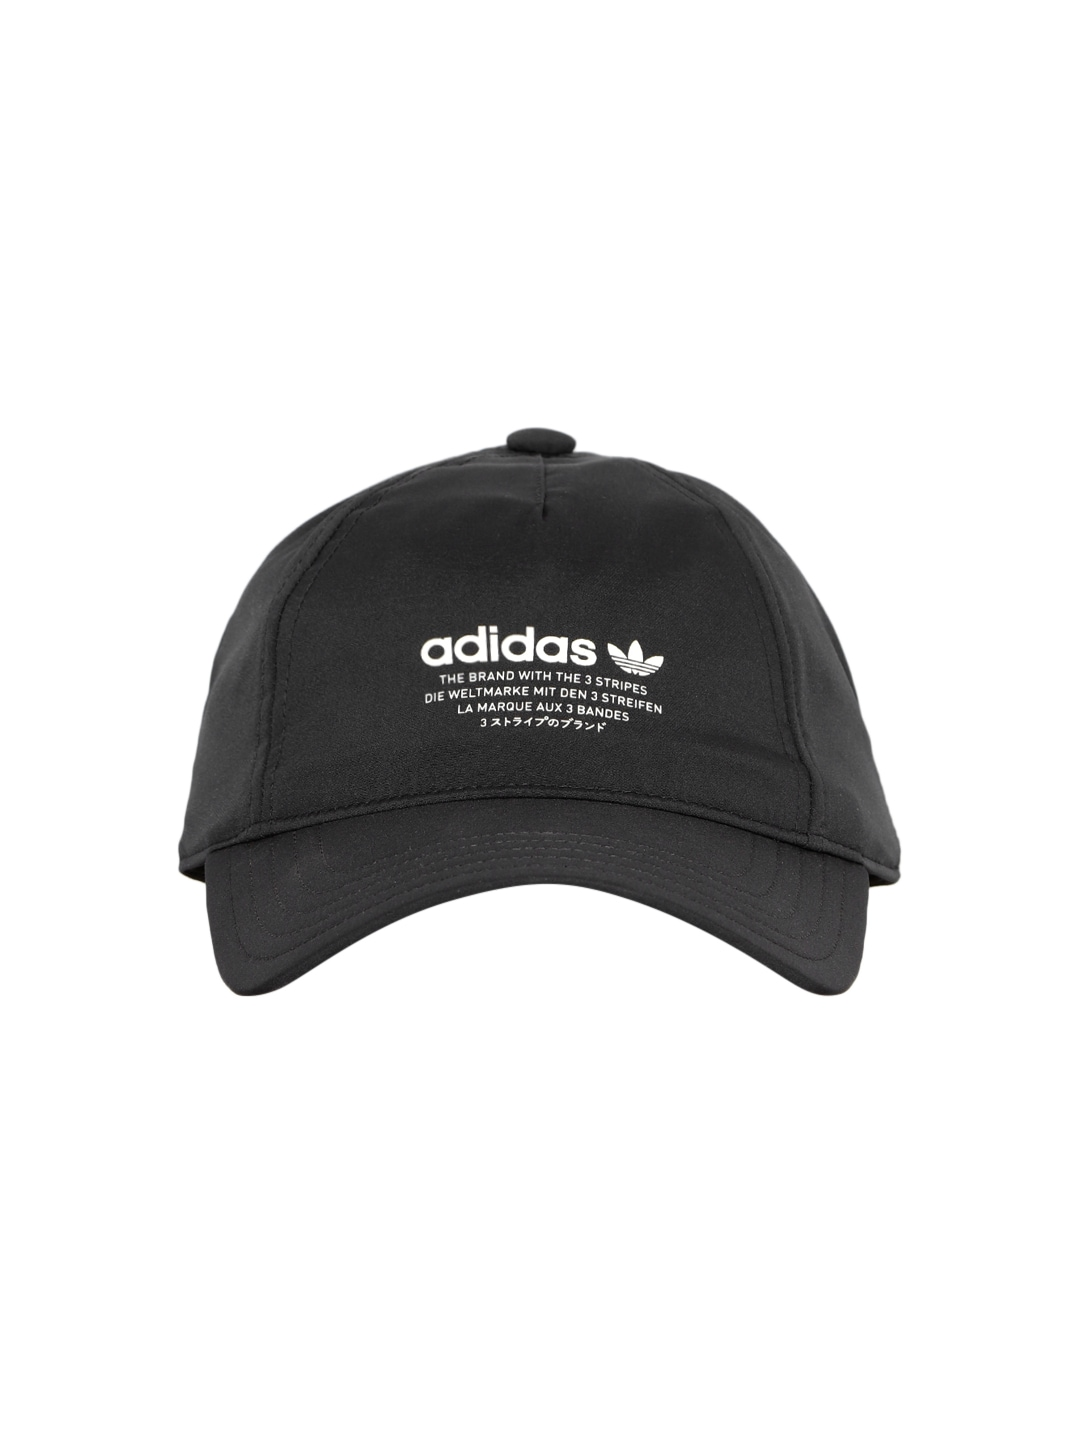 Adidas Original Black Caps - Buy Adidas Original Black Caps online in India 1a6718660ee8